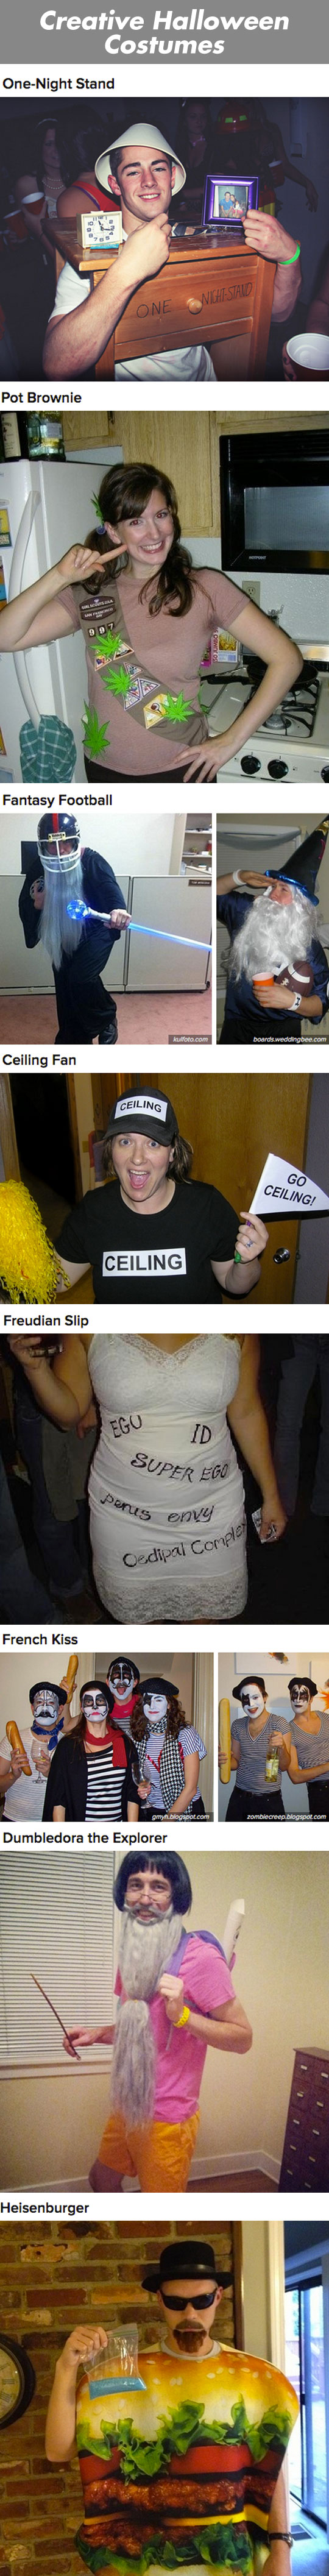 The Most Creative Halloween Costumes